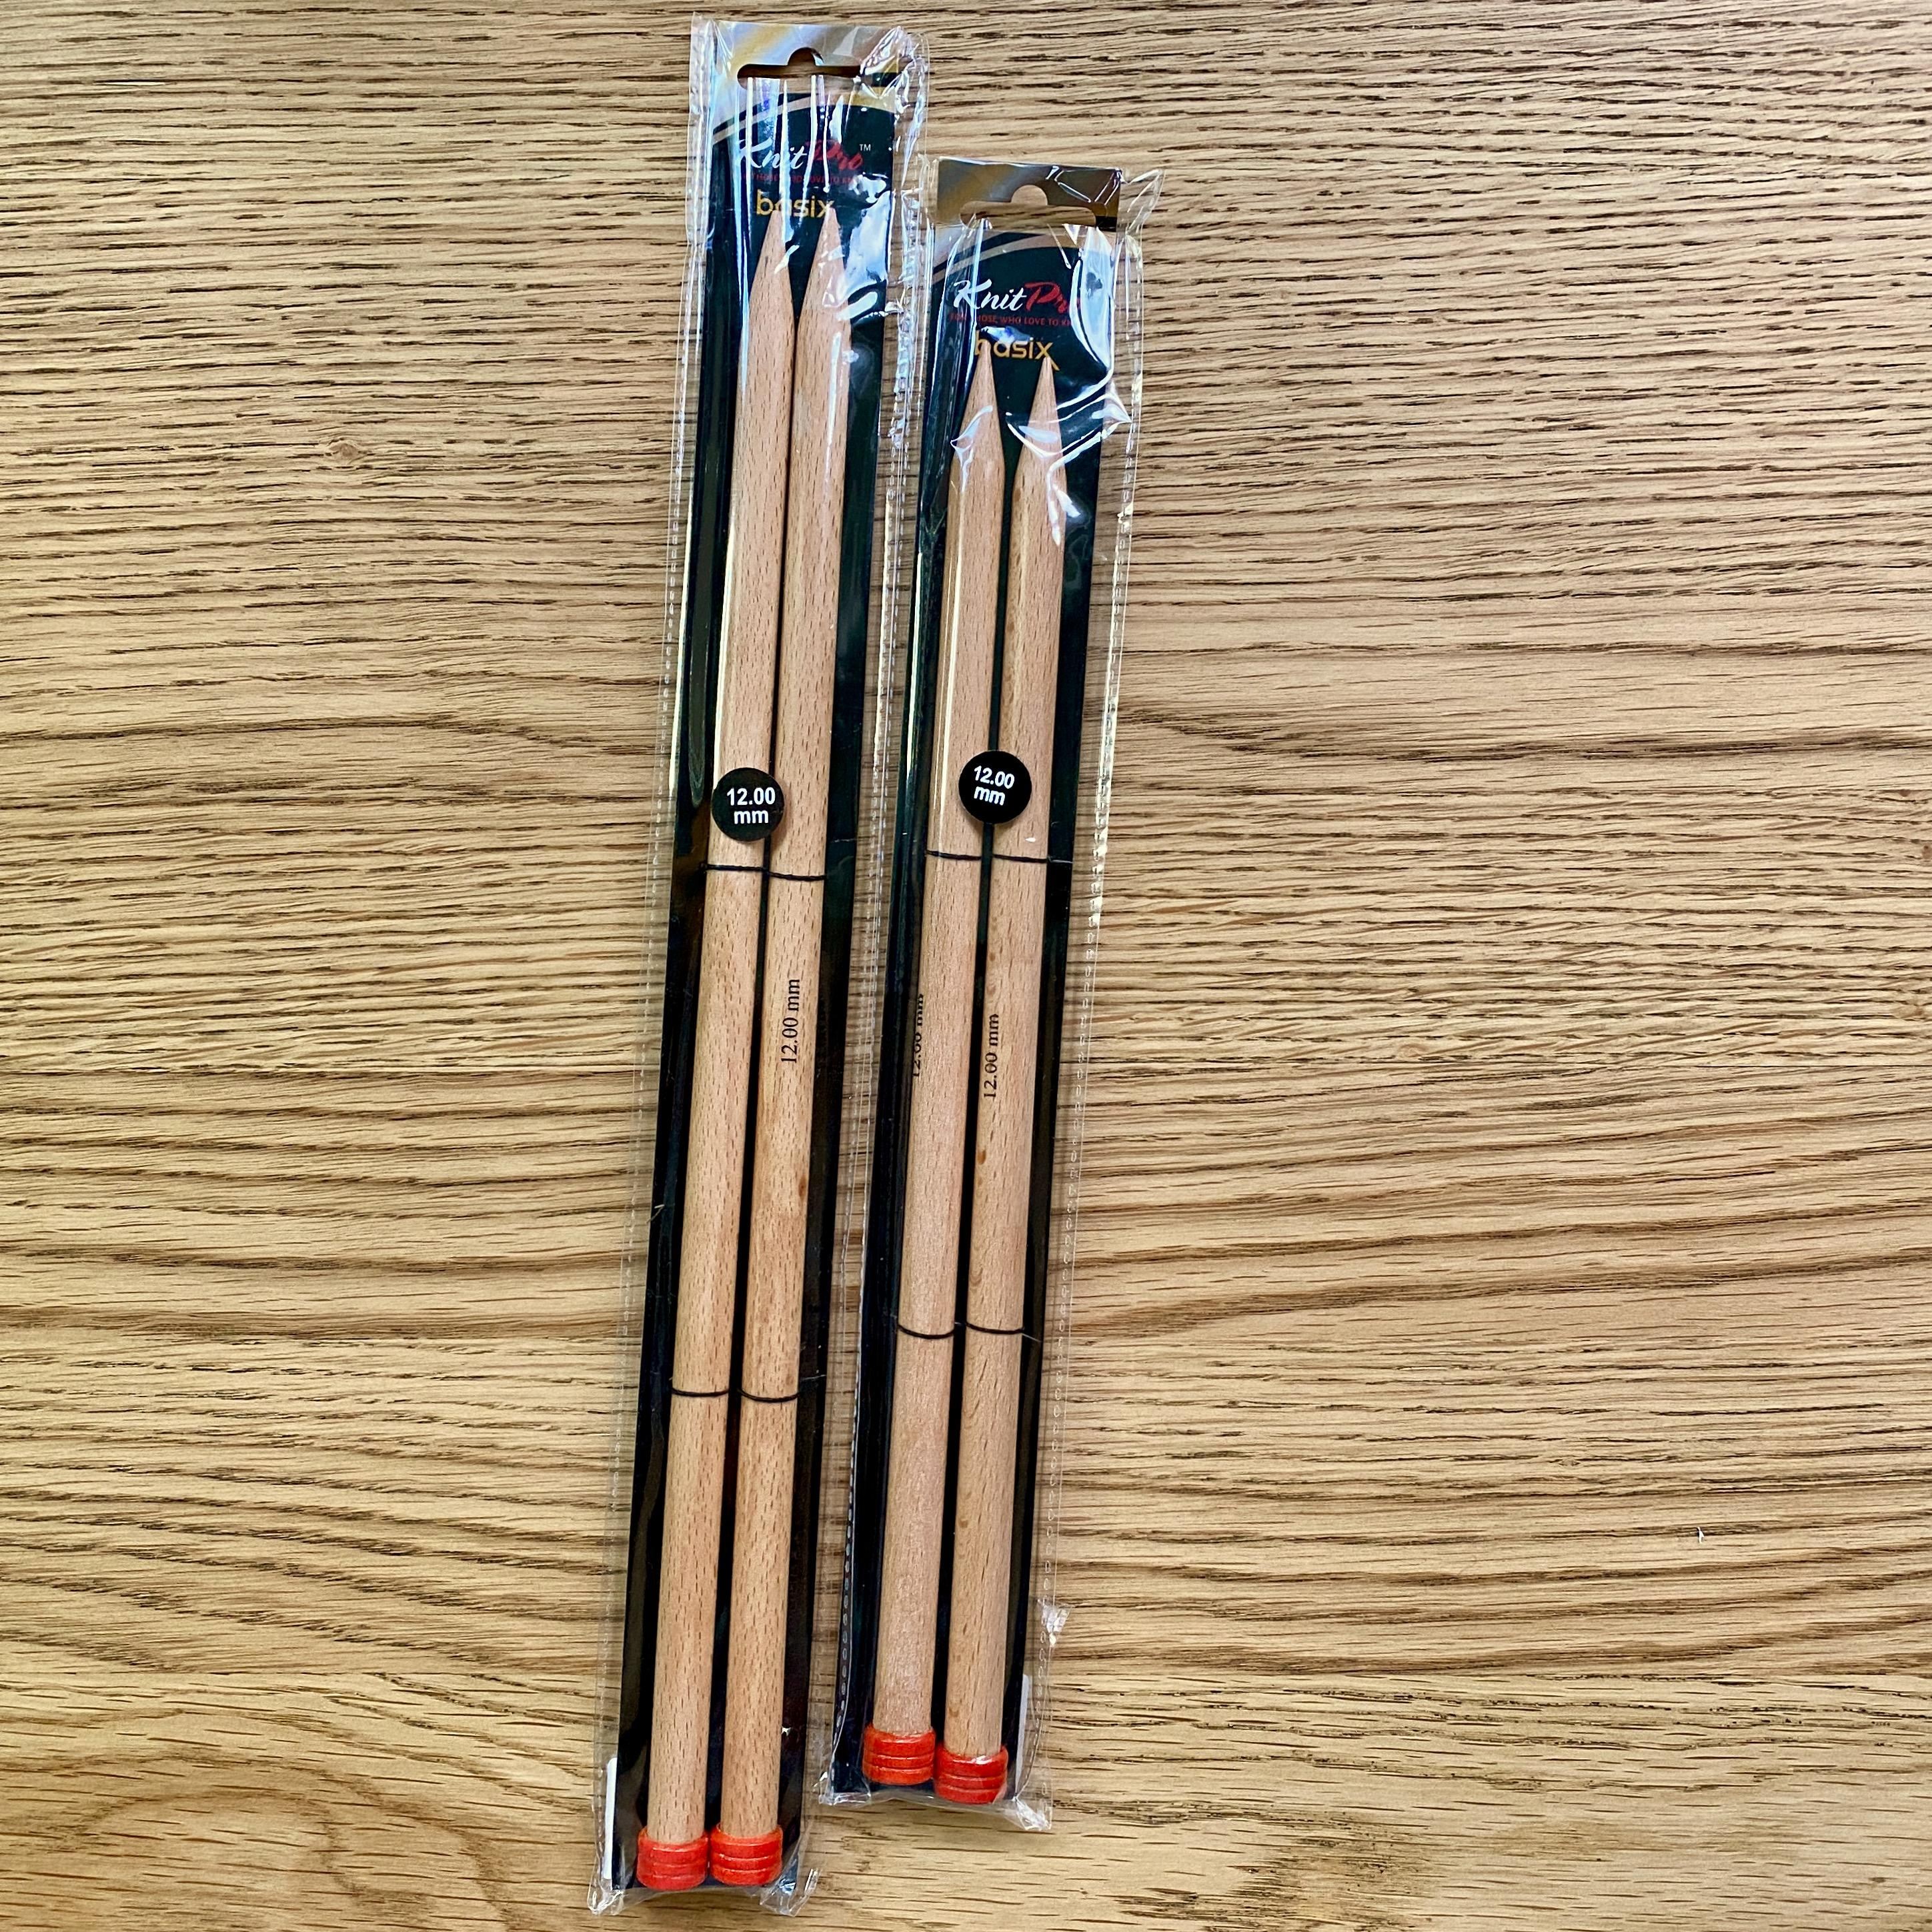 Knit Pro Birch needles in sizes 30cm and 35cm, with red stoppers and black and plastic packaging